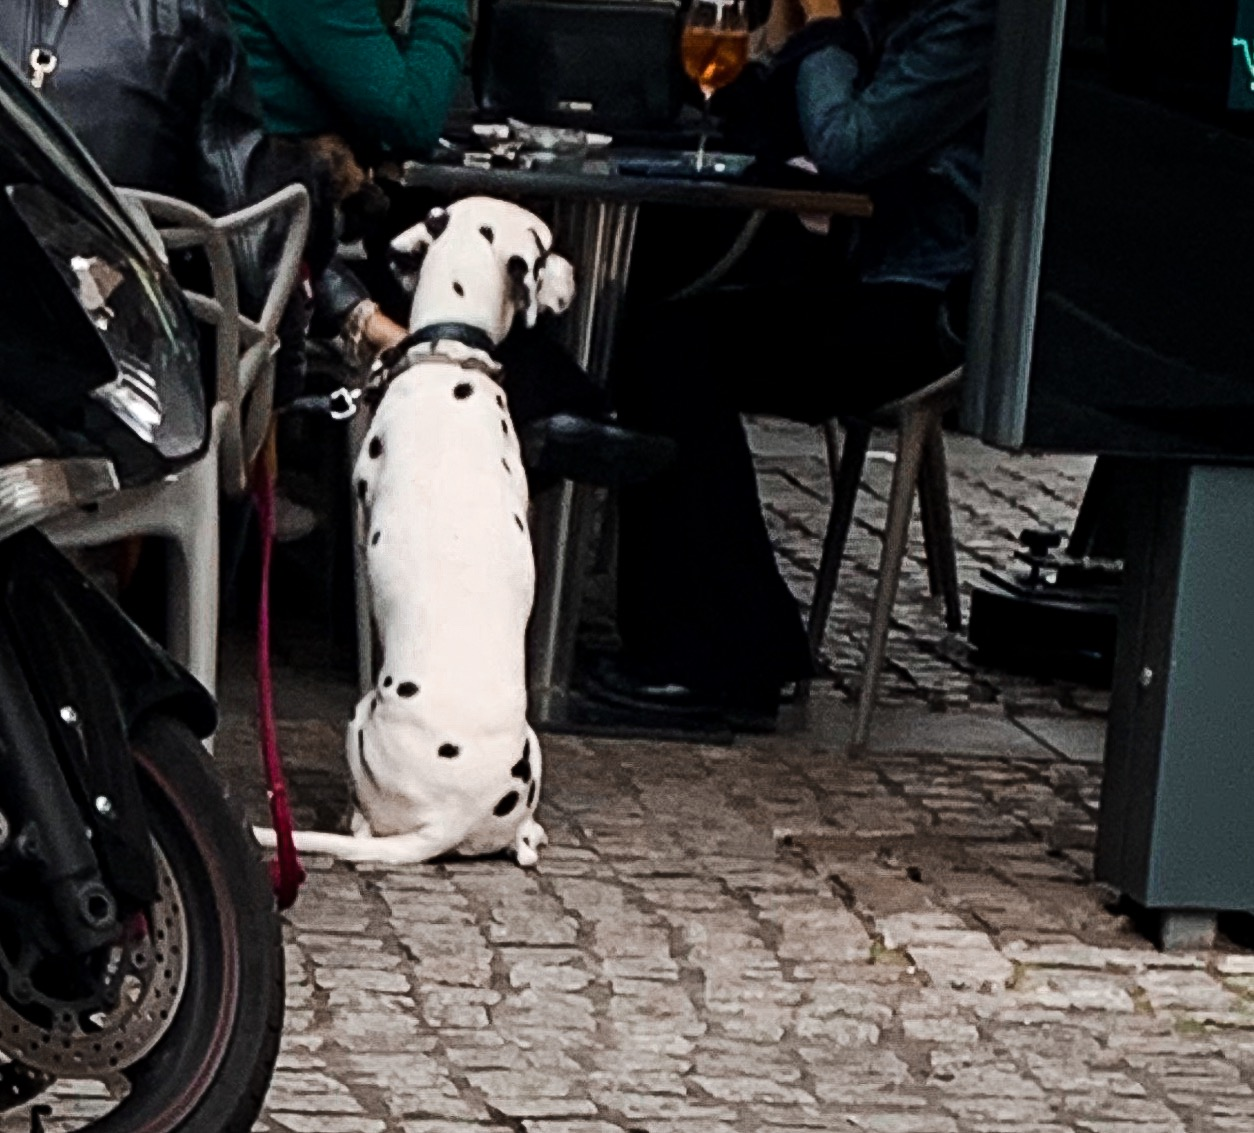 This was the real life Dalmatian I saw in Milan when I had gotten the inspiration for this beautiful course! - It gave me goosebumps! And I knew immediately this course was going to absolutely CHANGE LIVES!